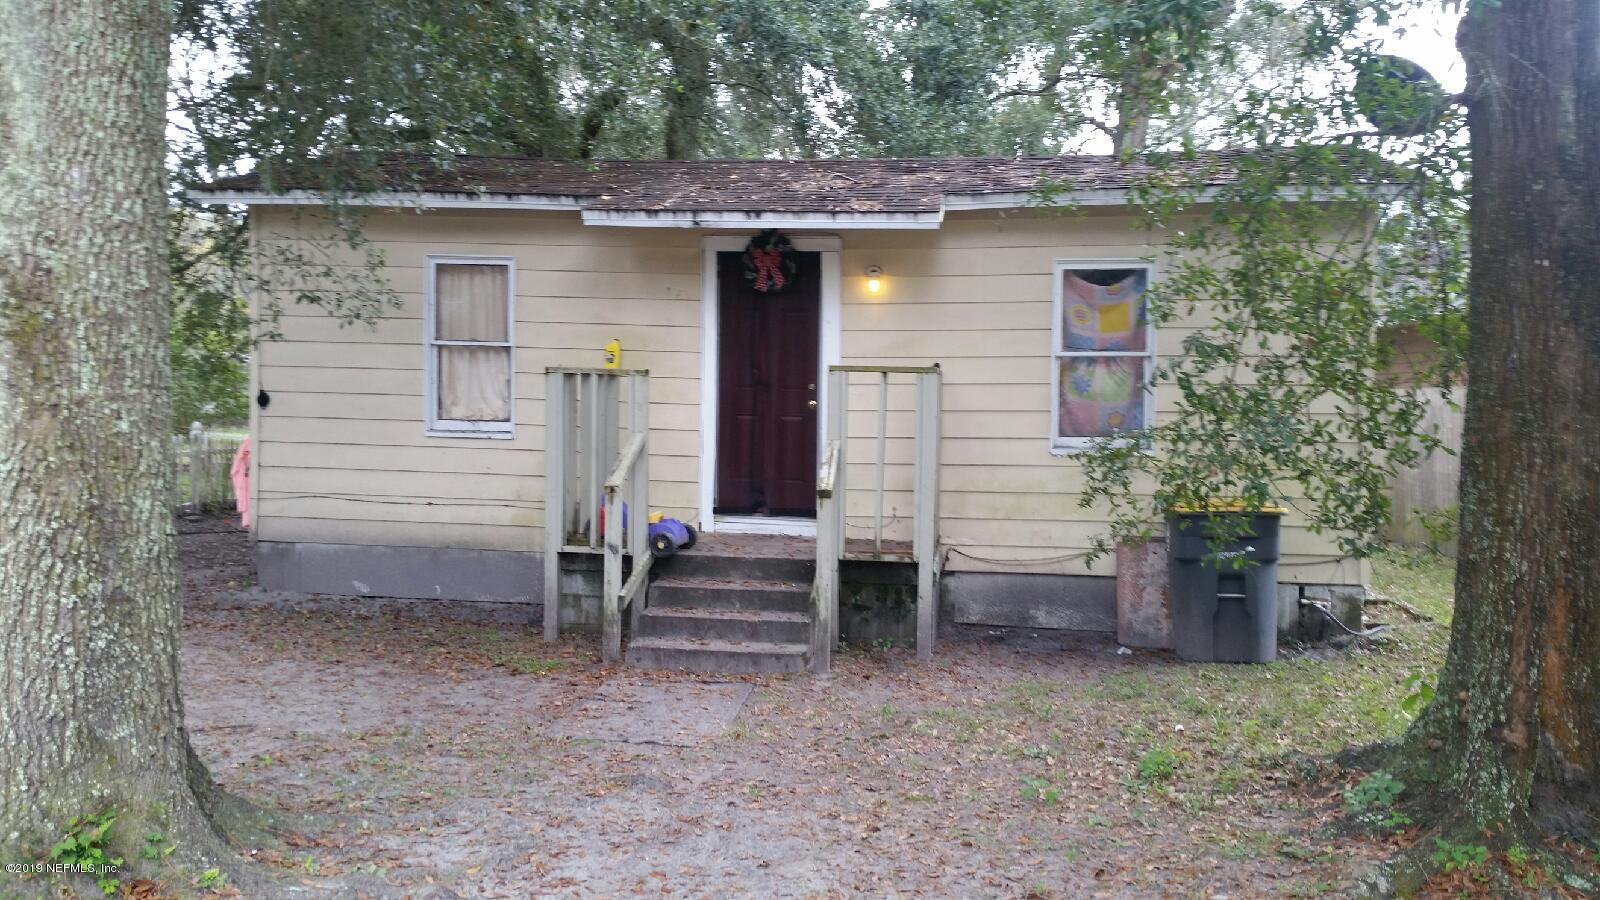 2344 JOHNSON, JACKSONVILLE, FLORIDA 32207, 3 Bedrooms Bedrooms, ,1 BathroomBathrooms,Commercial,For sale,JOHNSON,973029